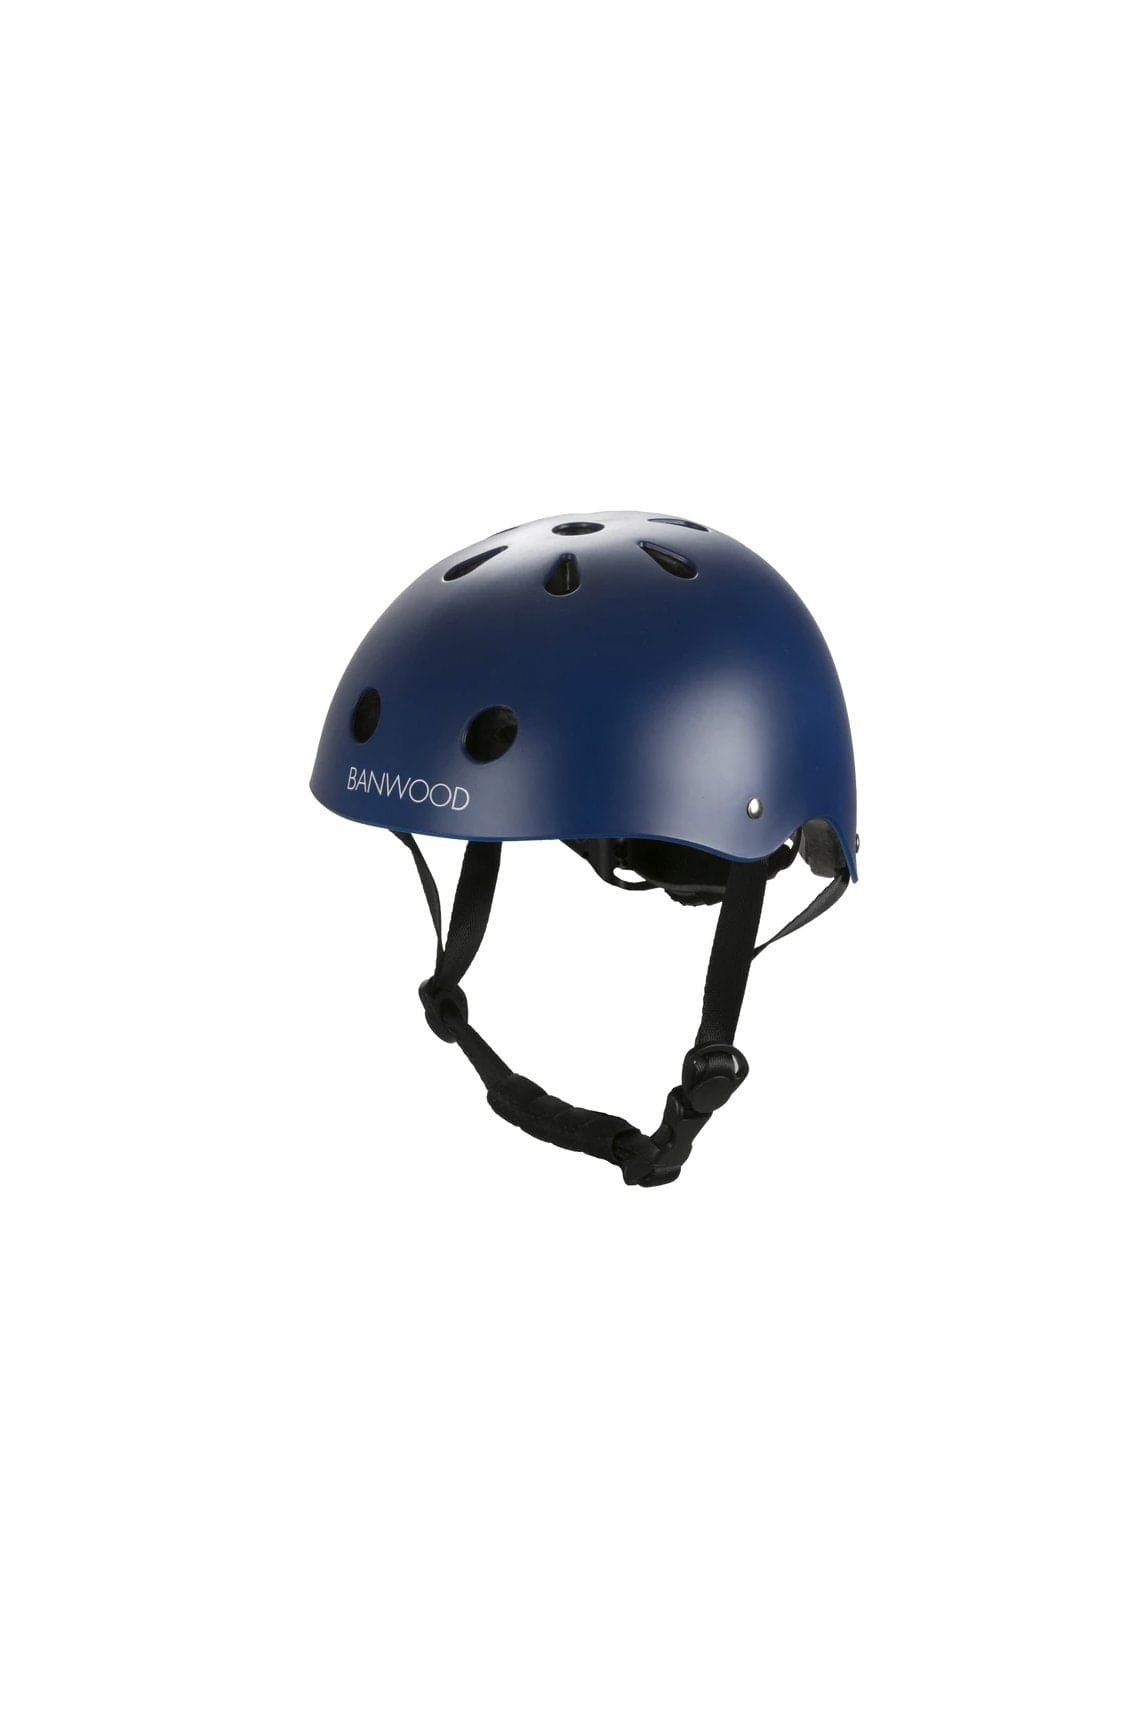 BANWOOD CLASSIC HELMET MATTE NAVY - Hello Little Birdie